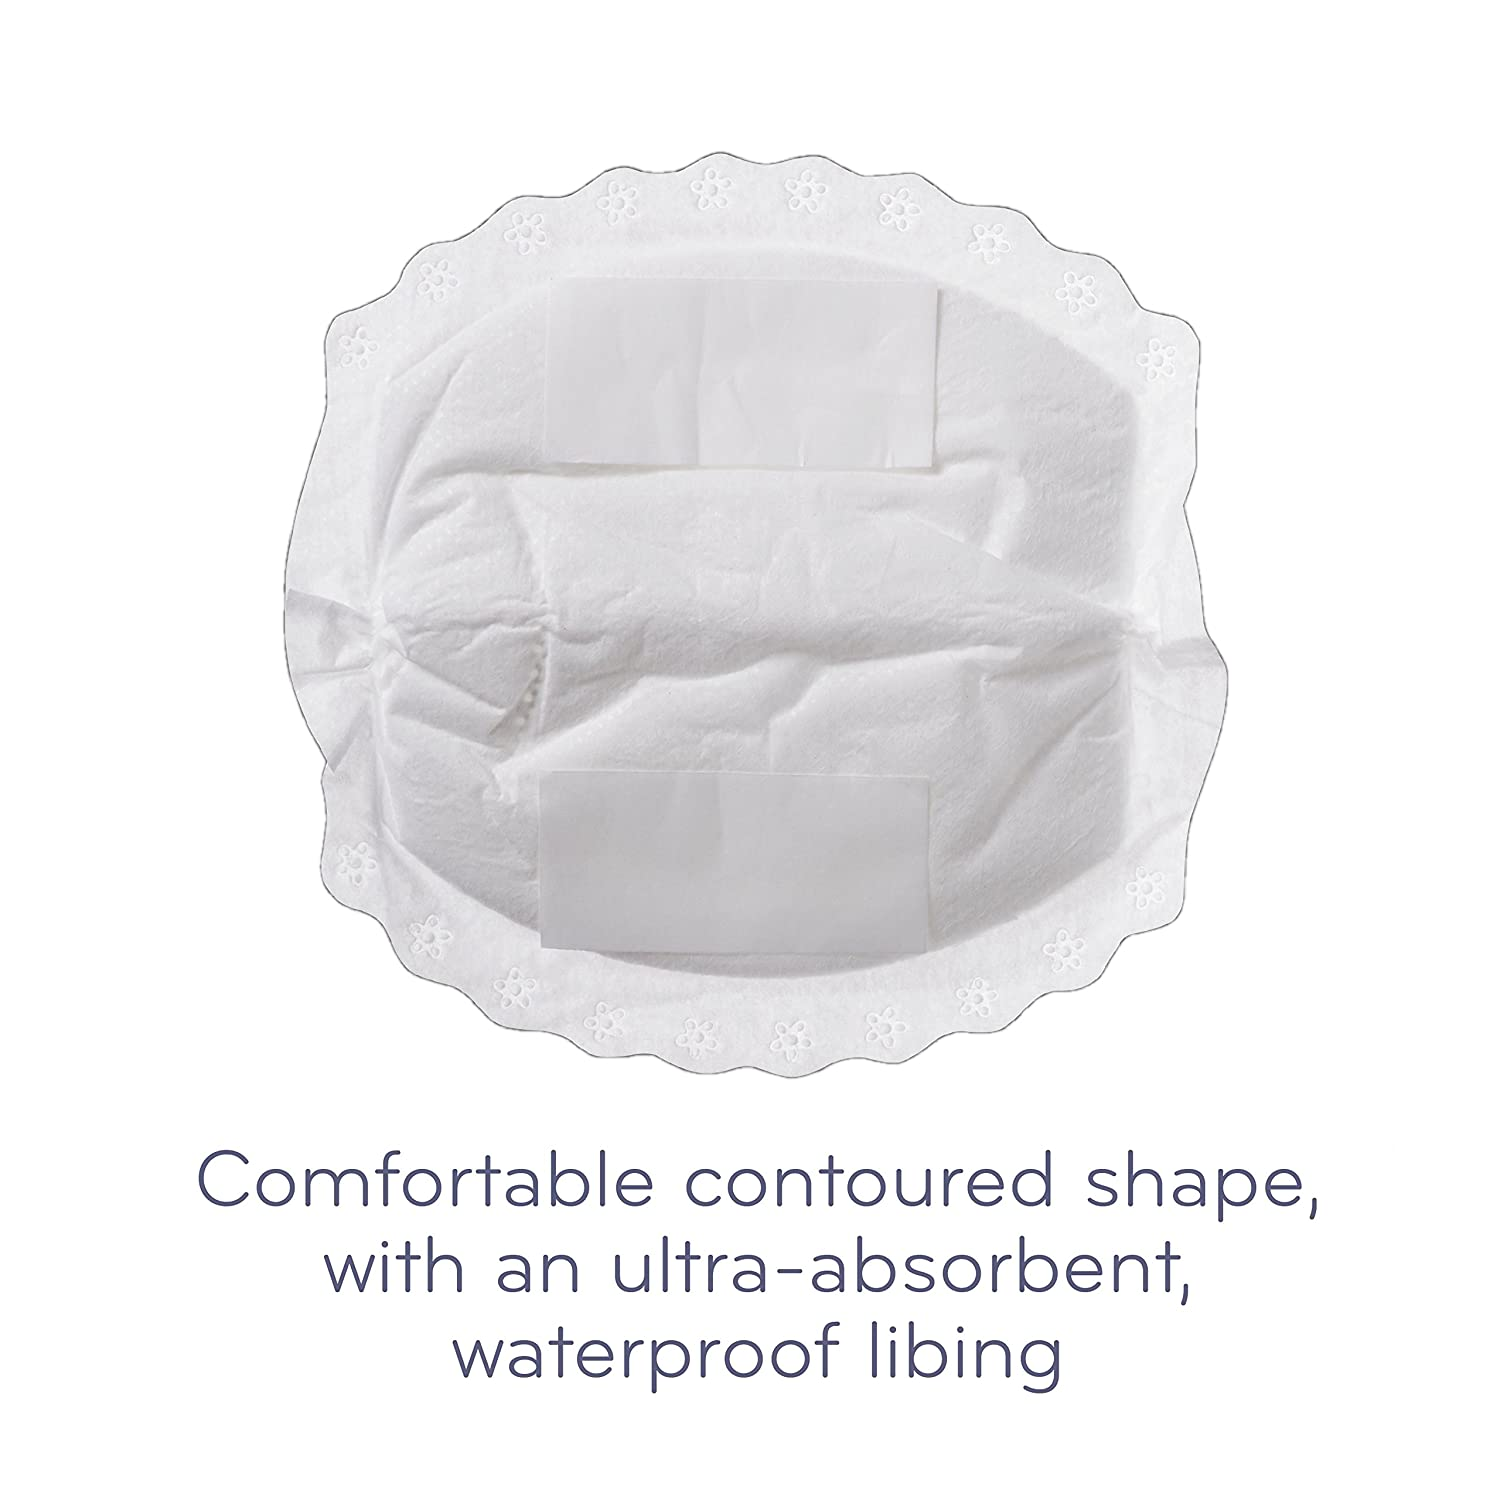 Nuby Natural Touch Disposable Breast Pads 50 Pads Black and White